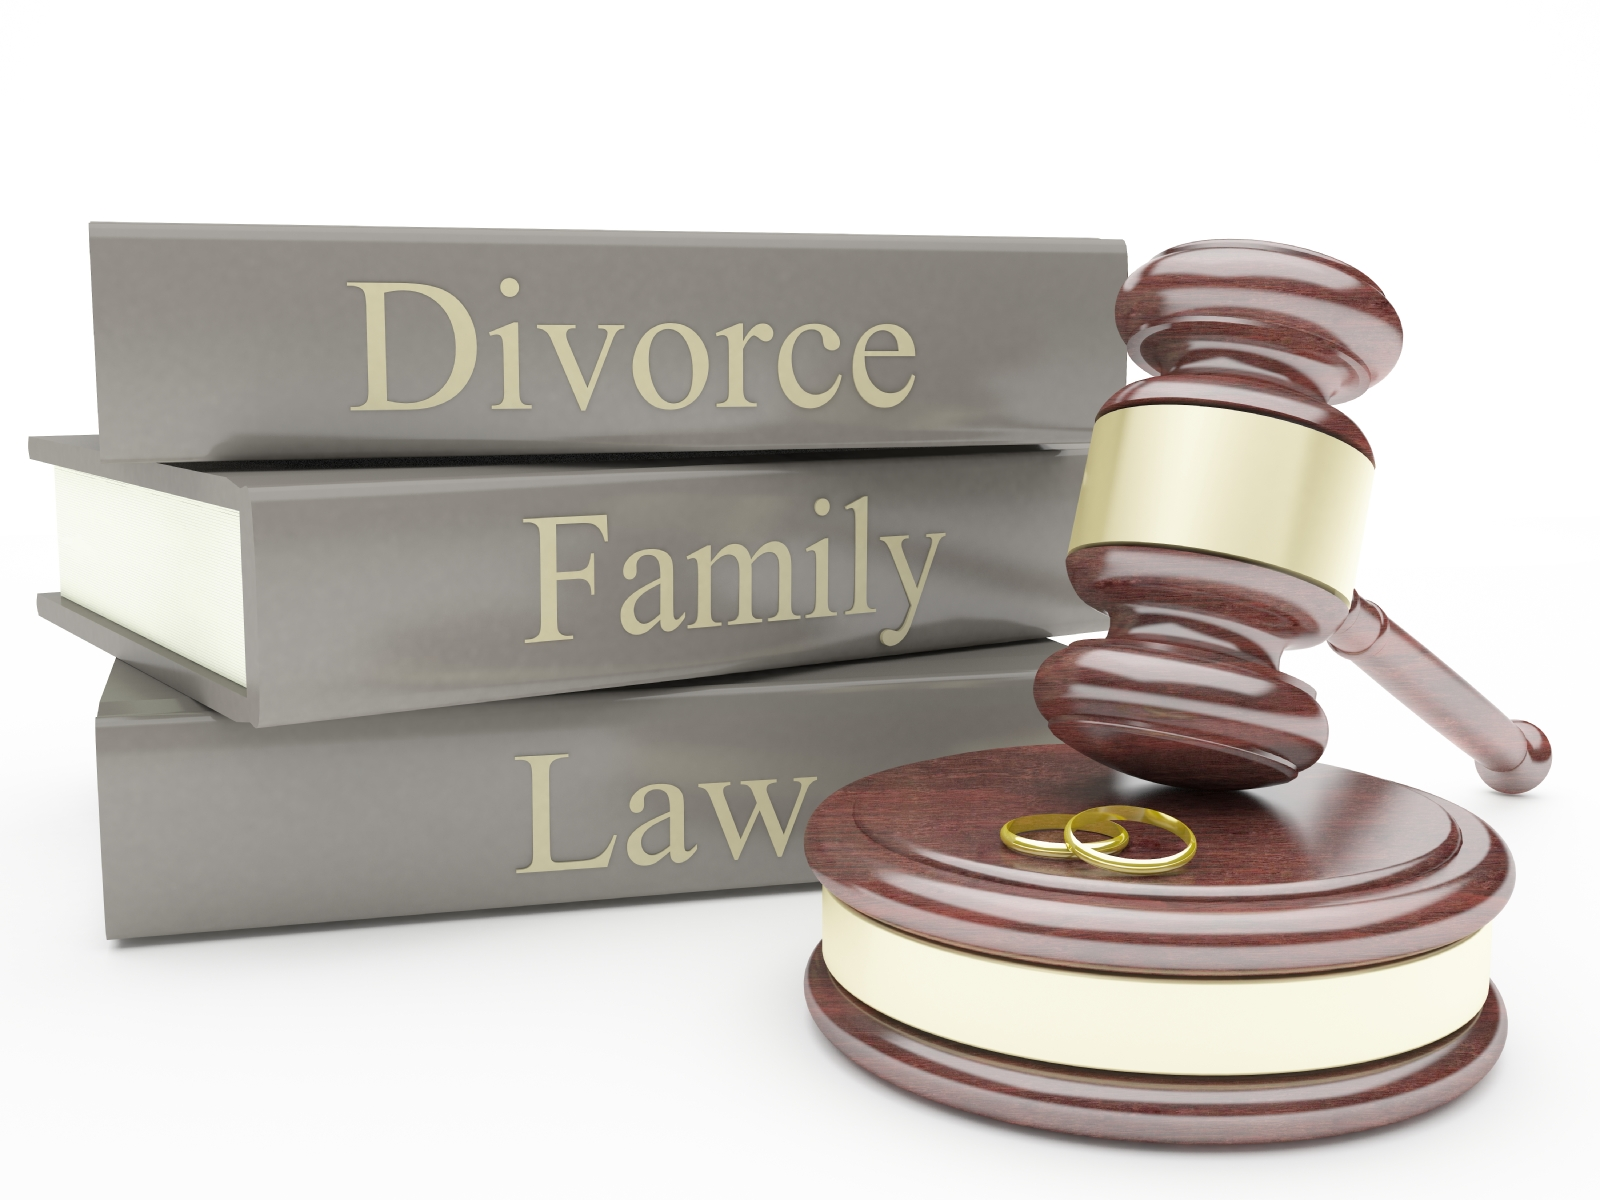 Major Attributes of Dexterous Legal Services by Family Divorce Lawyers